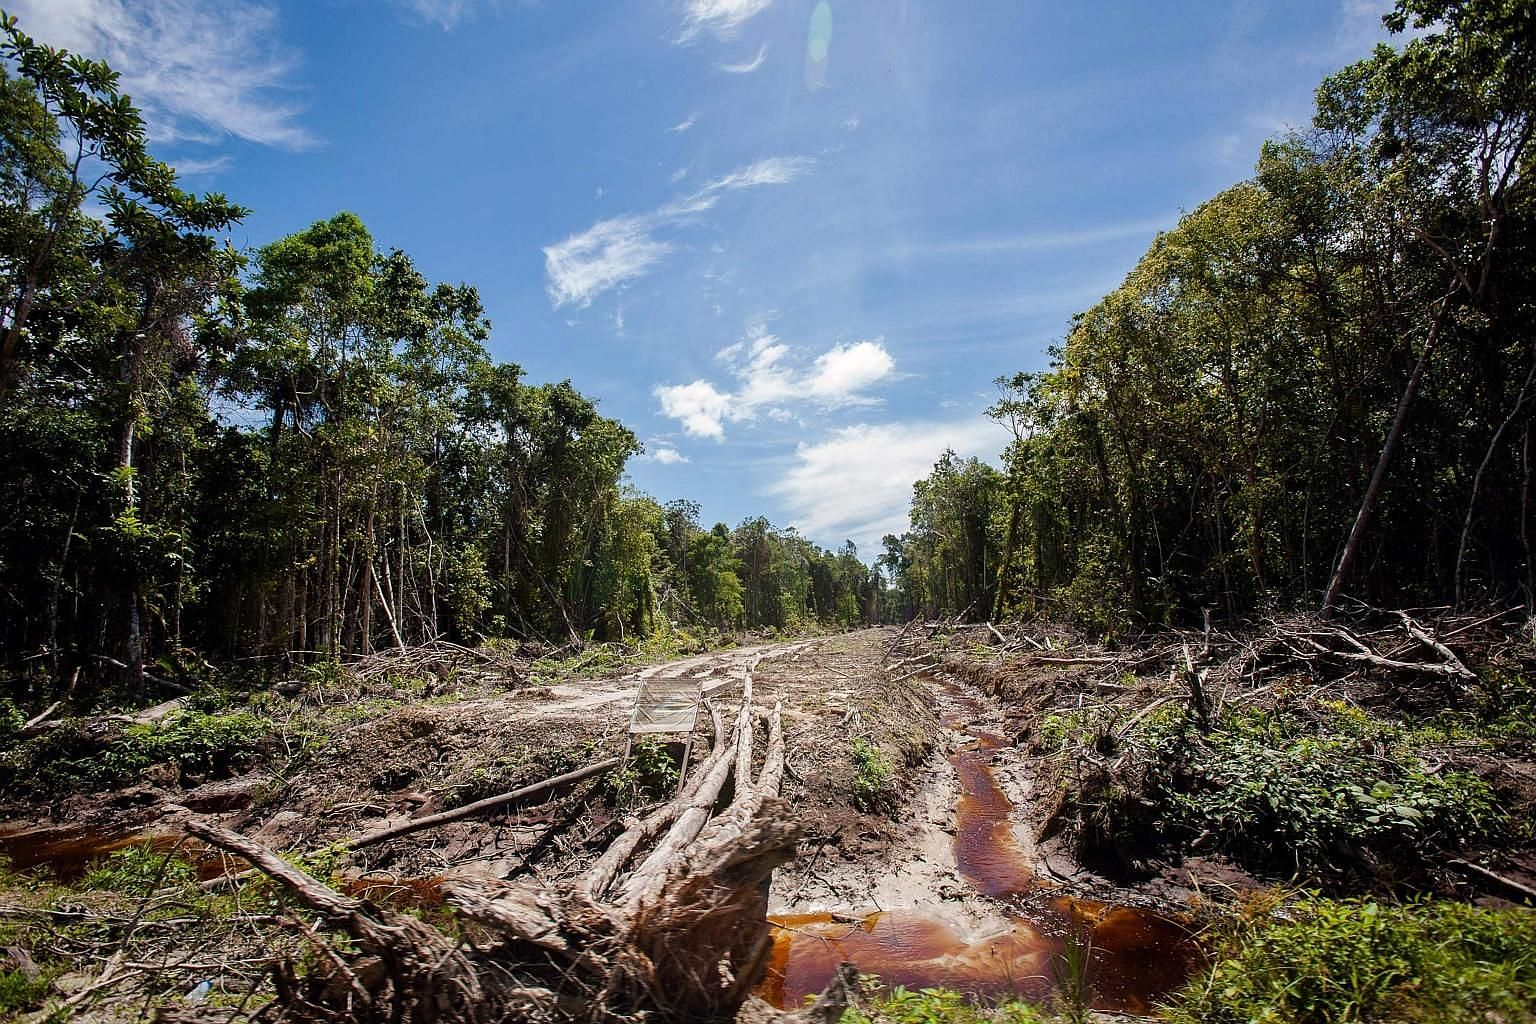 A peatland forest being cleared in Aceh in 2013 for a palm oil plantation. Activists say Norway's decision to phase out the use of palm oil-based biofuels from its renewable energy mix from 2030 is a major step forward in saving the rainforests, prot